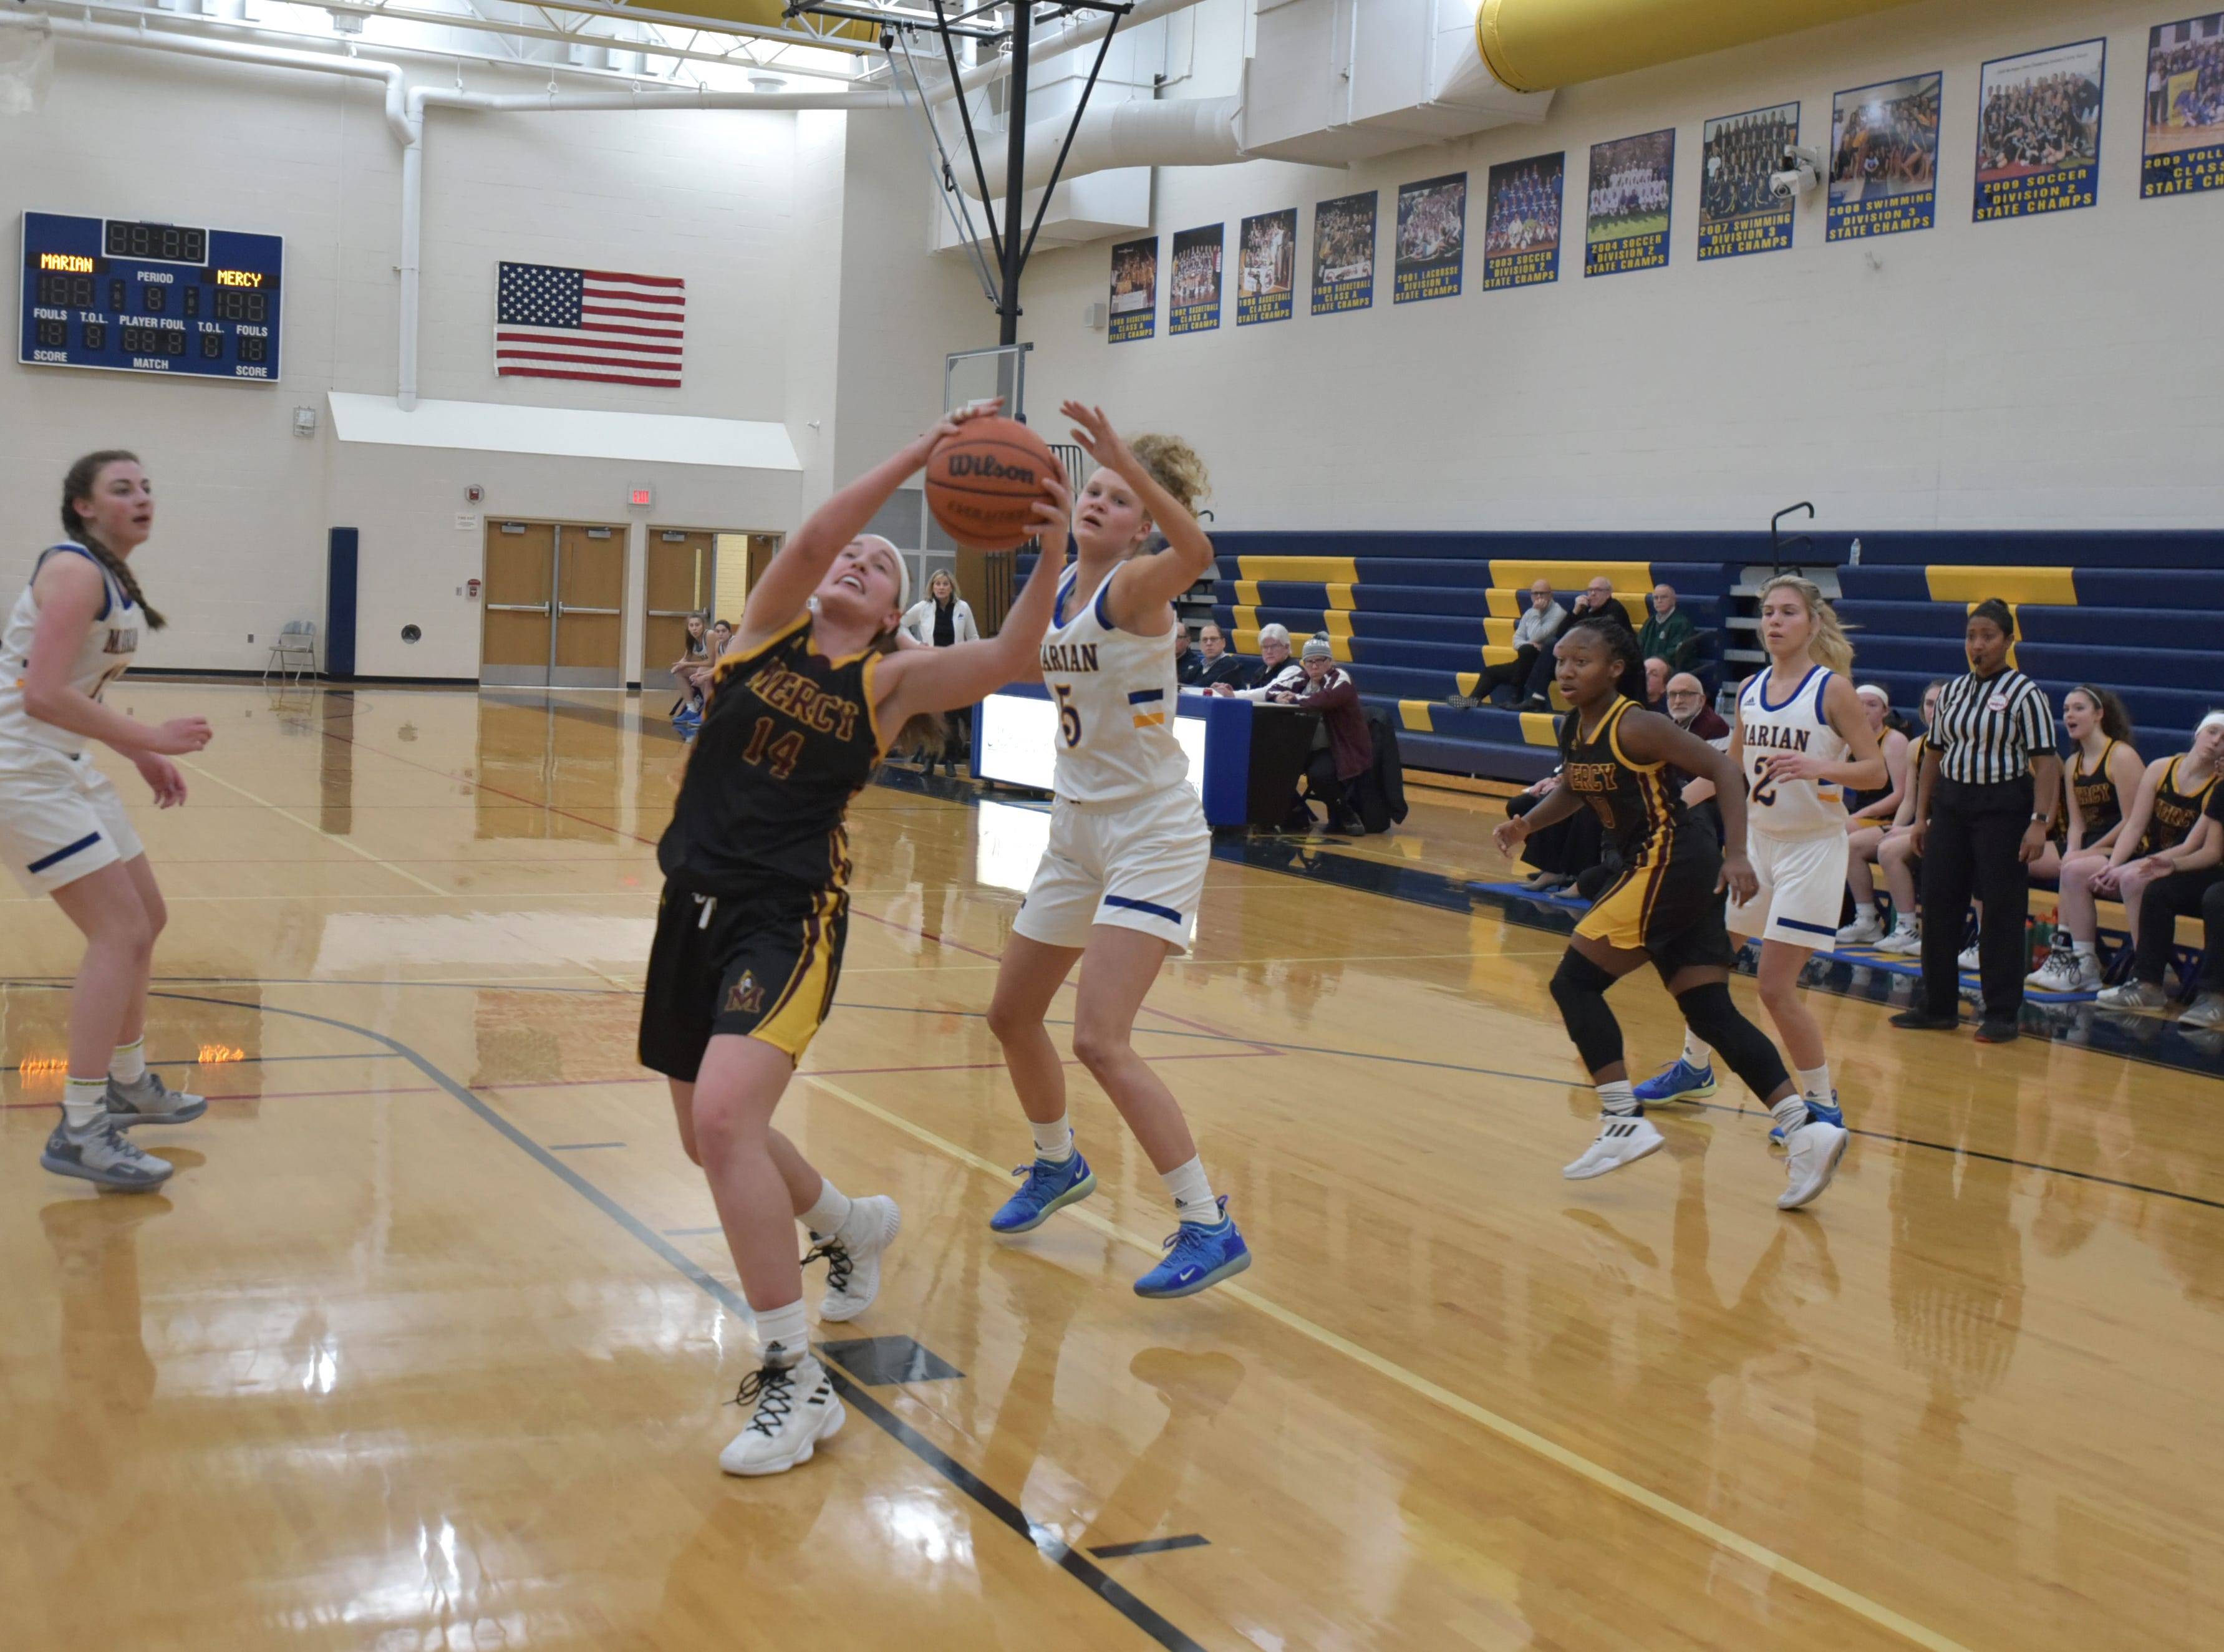 Mercy High visits Marian High in West Bloomfield on Jan. 19.